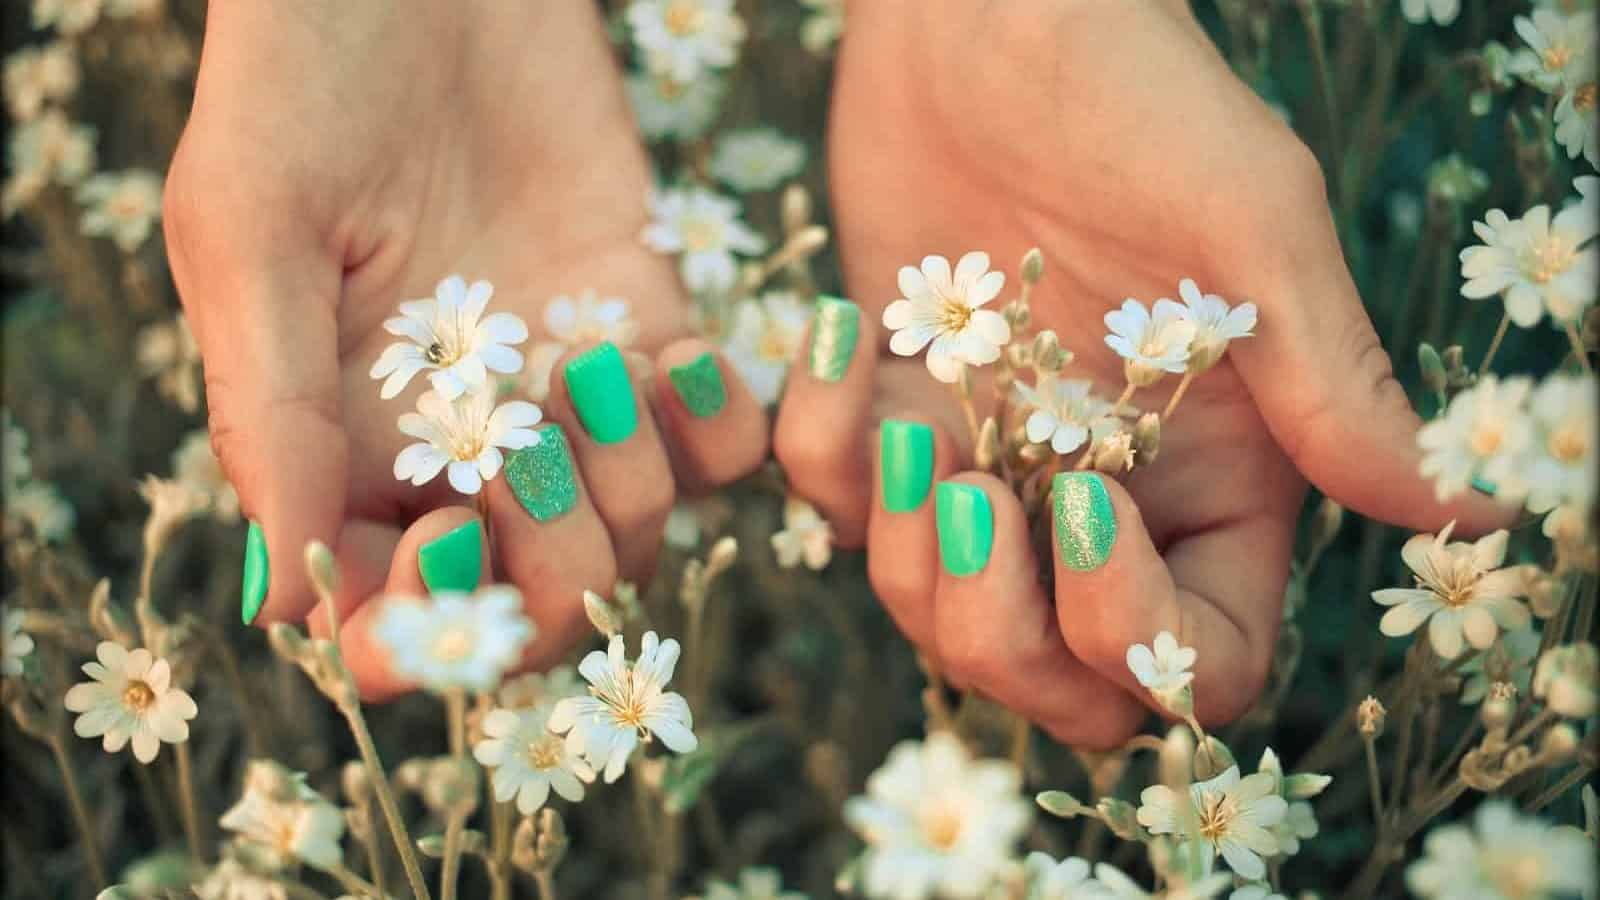 Top 25 Beautiful Short Nail Designs